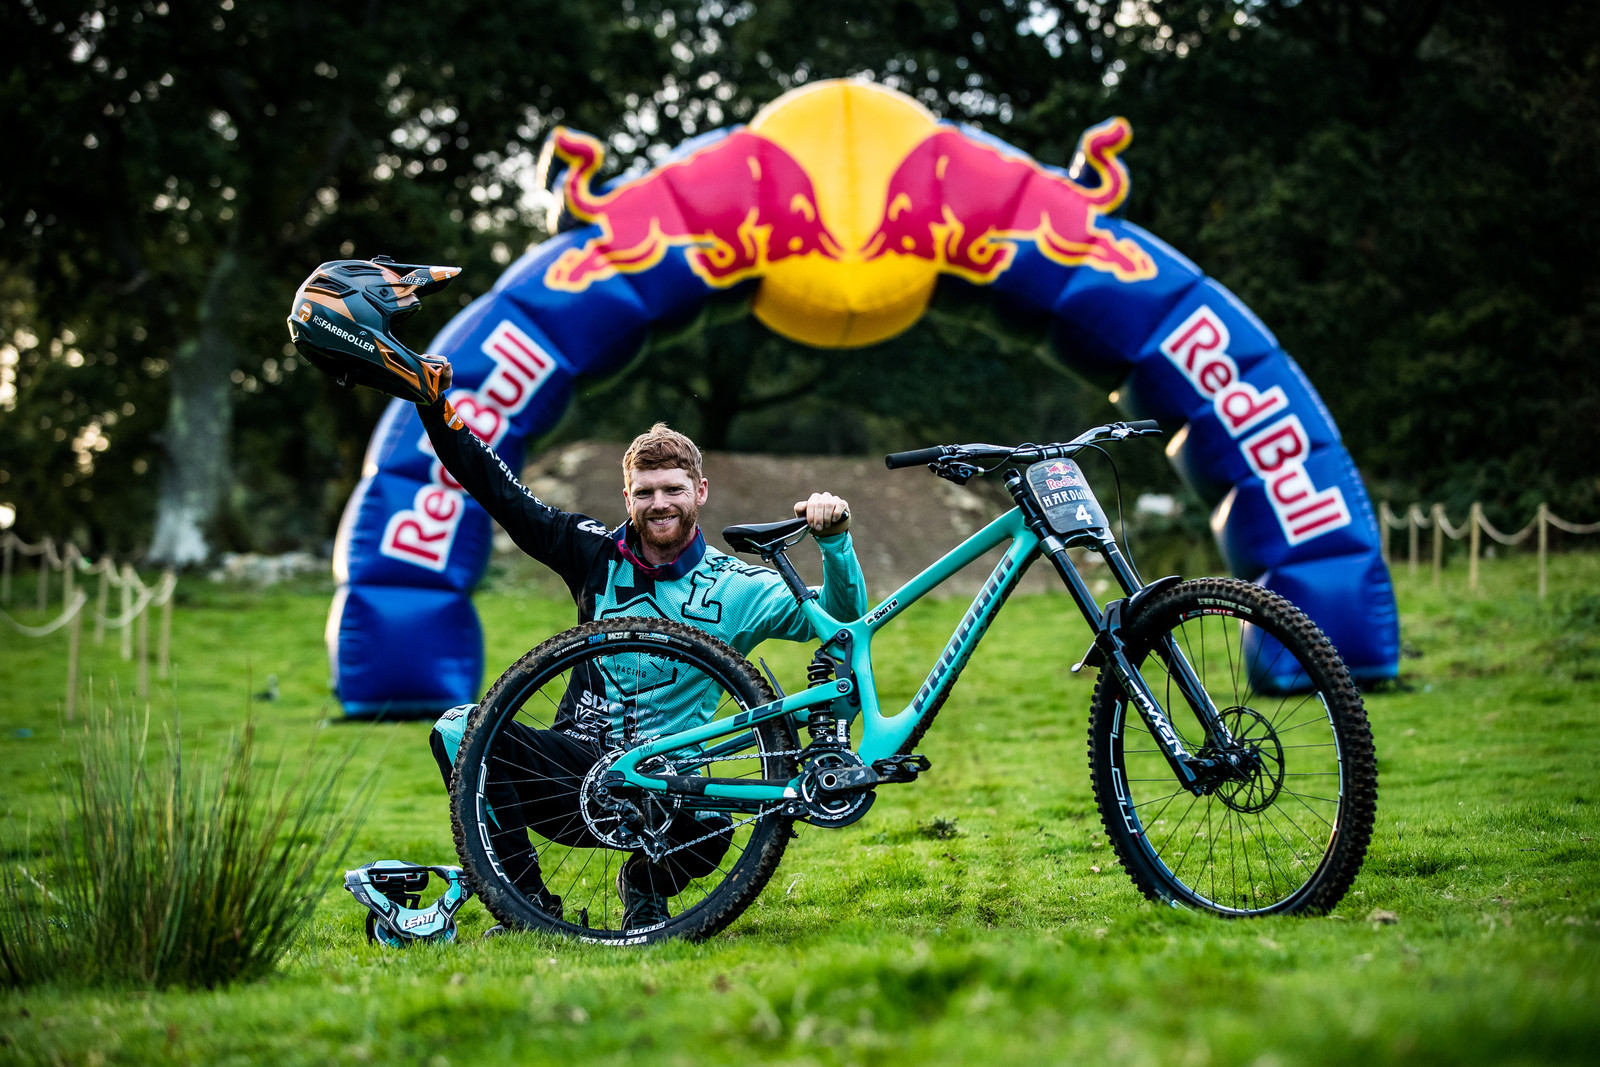 Joe Smith with his Propain Rage CF - The Bikes of Red Bull Hardline - Mountain Biking Pictures - Vital MTB